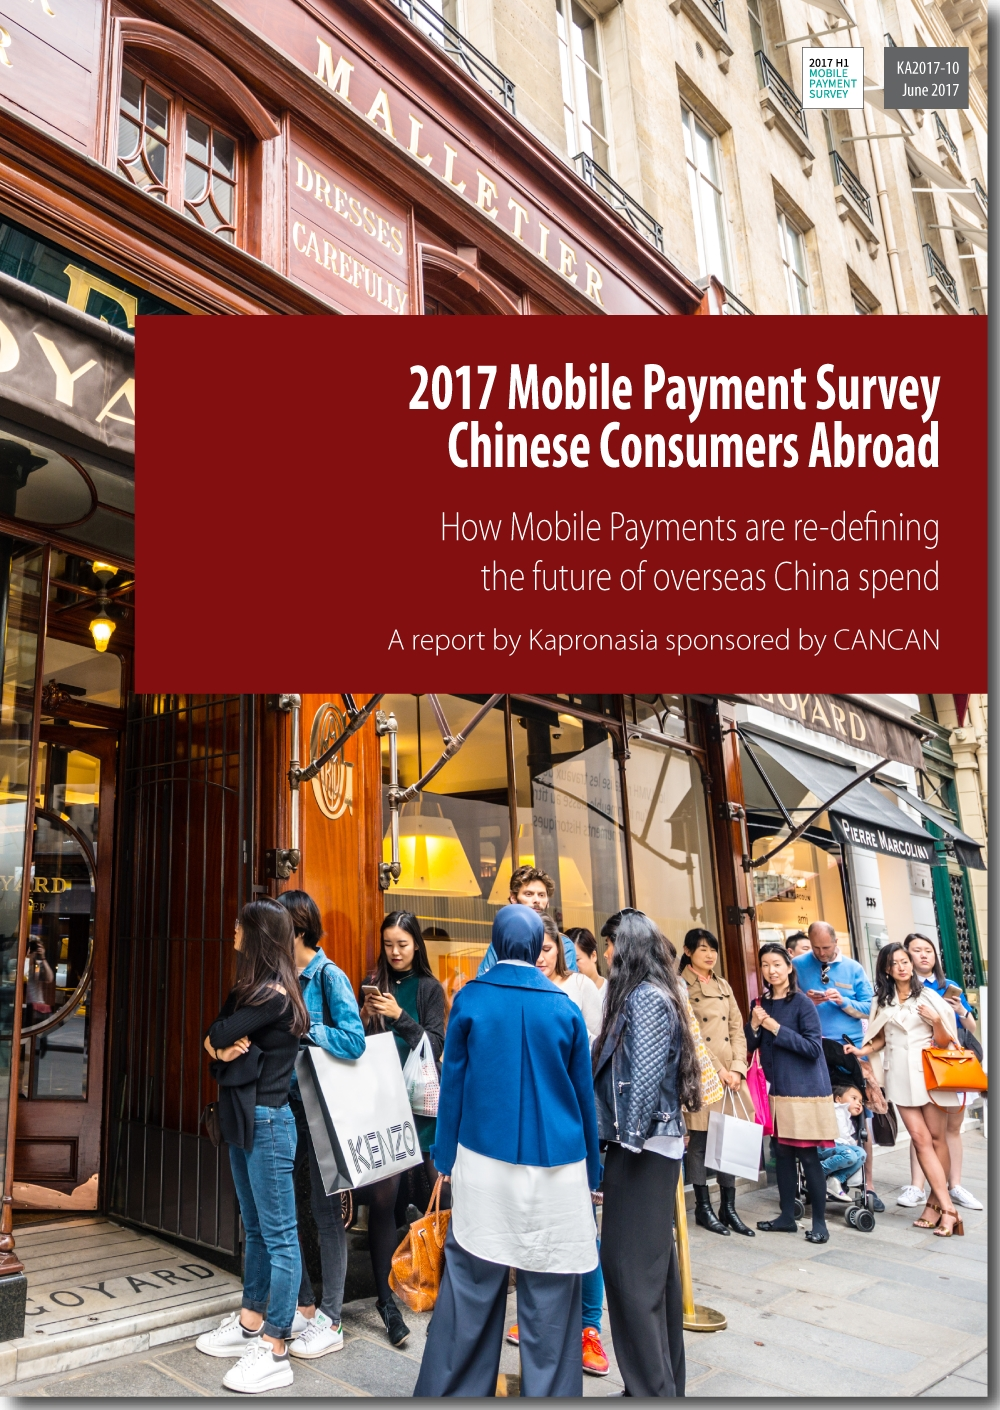 2017 Mobile Payments Survey - Chinese Consumers Abroad